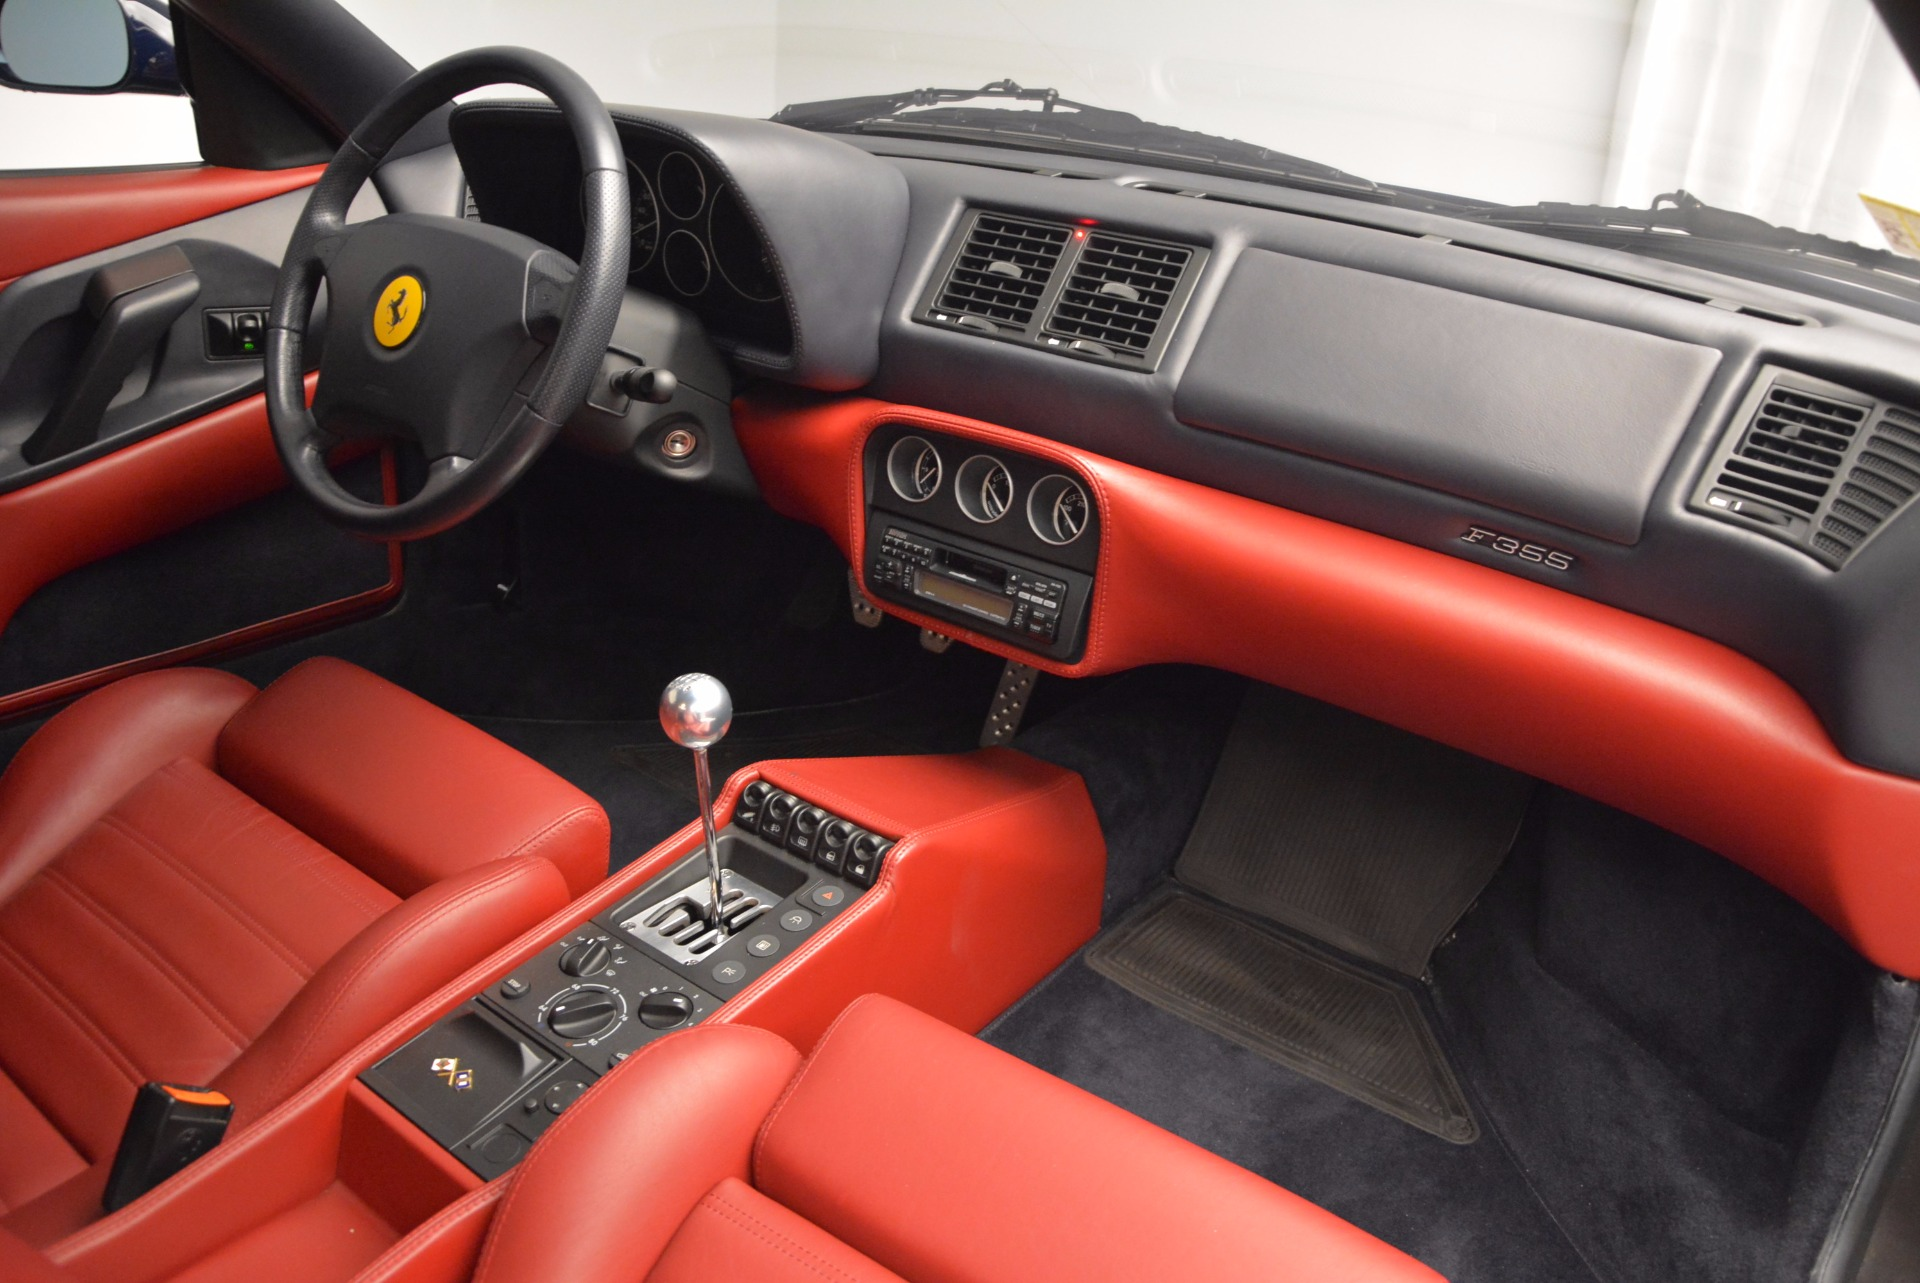 Used 1999 Ferrari 355 Berlinetta For Sale In Greenwich, CT 855_p18